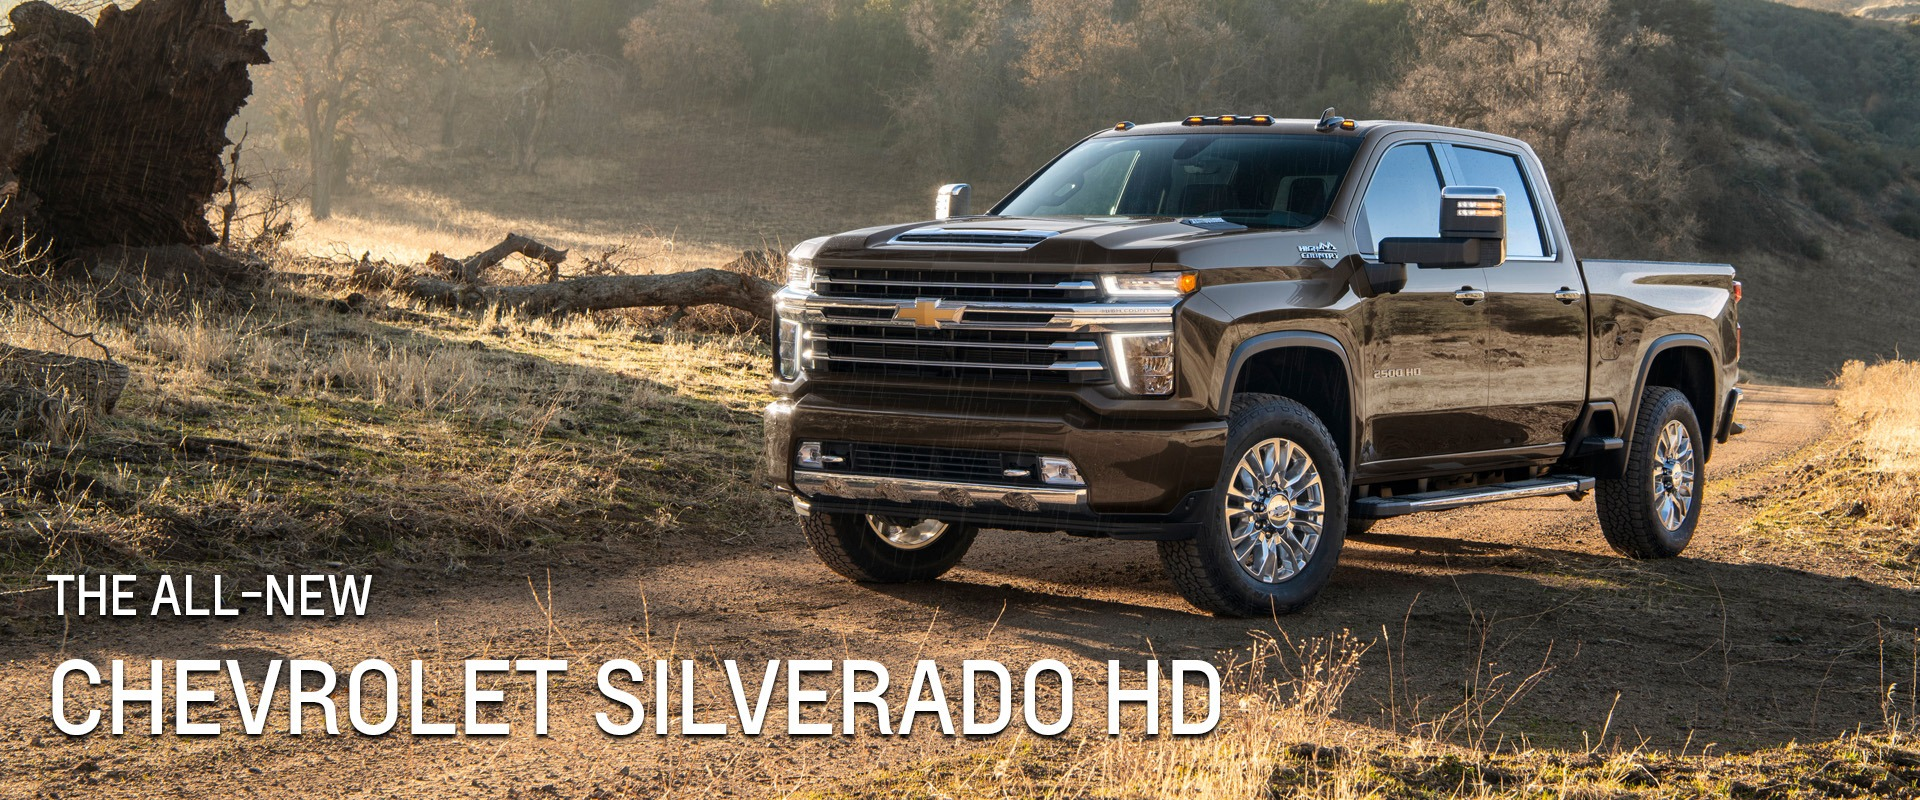 Chverolet silverado hd